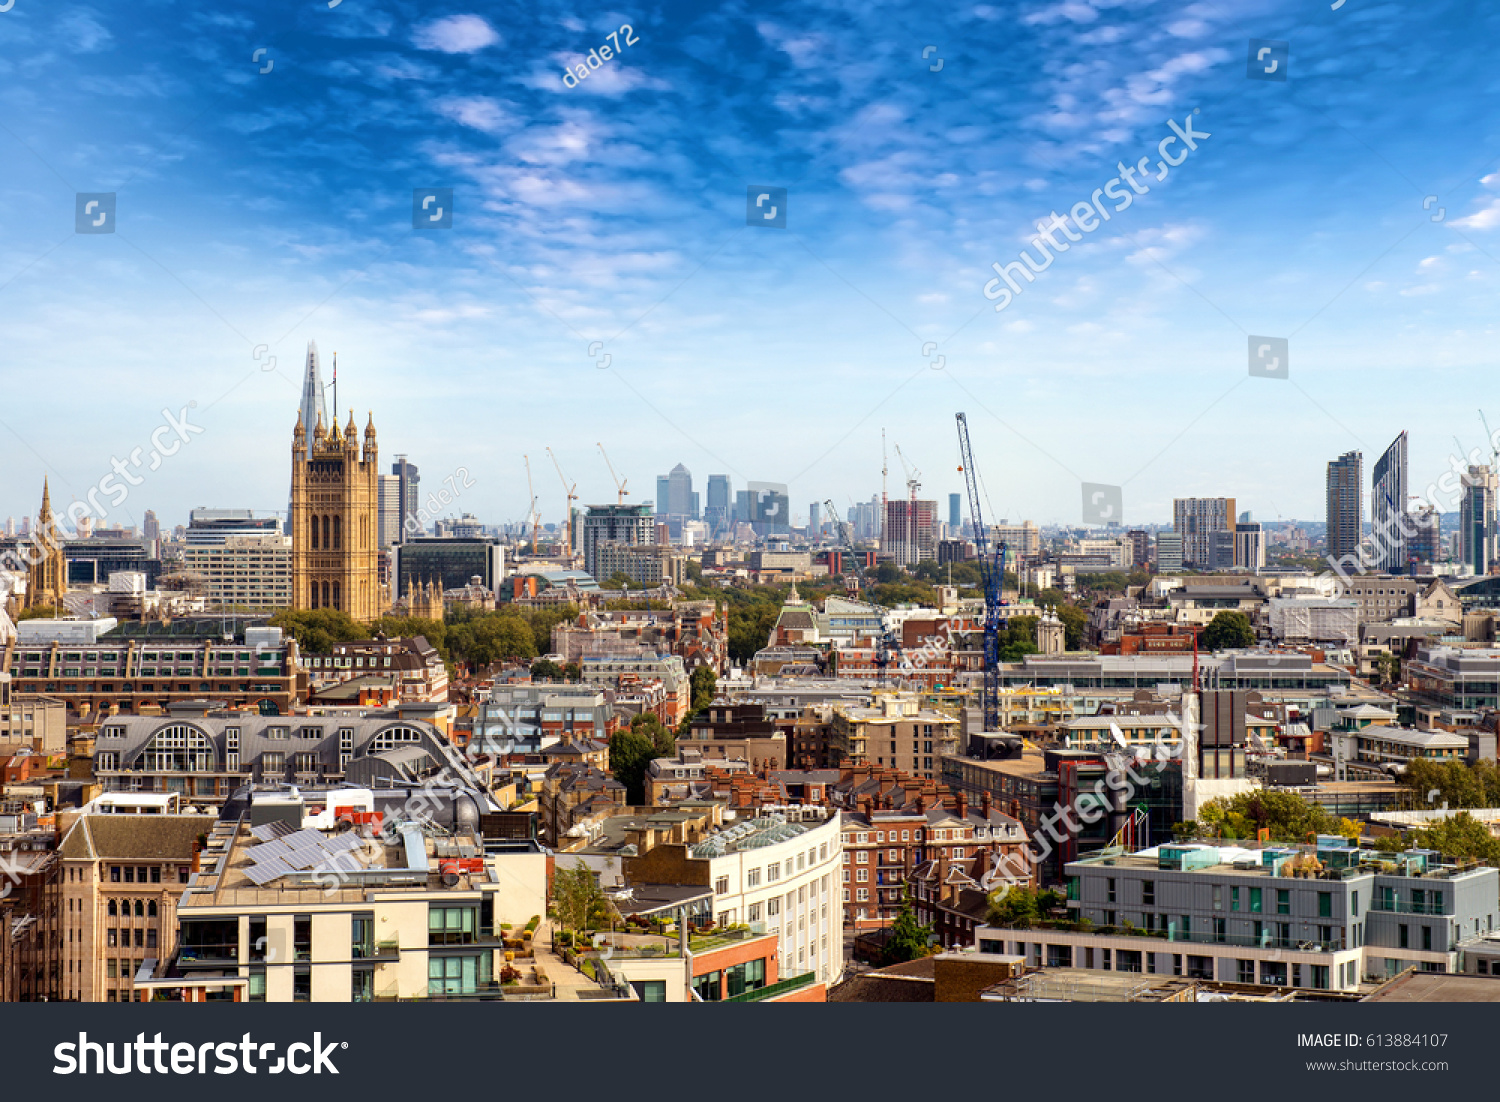 Uncategorized Panoramic Views Of London panoramic views london above stock photo 613884107 shutterstock of from above